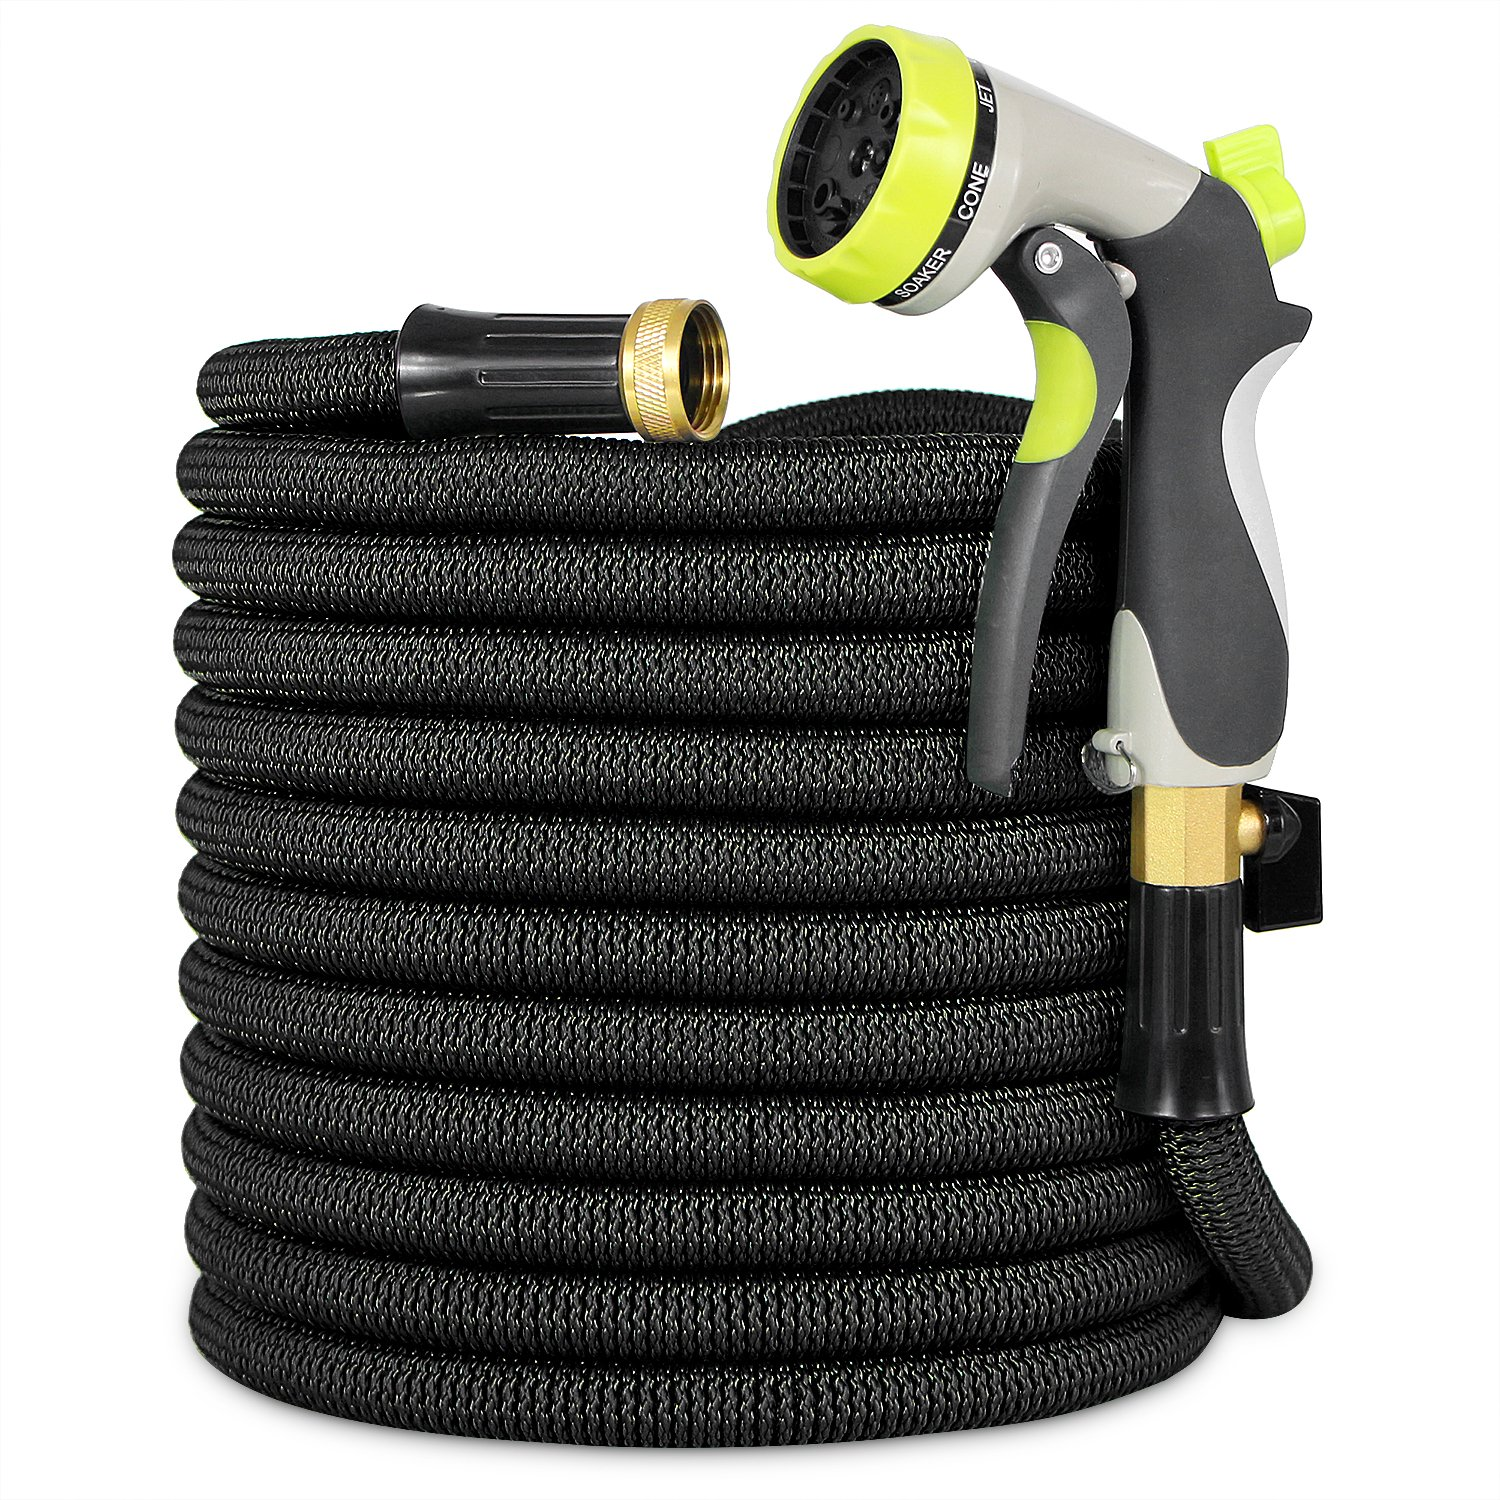 Garden Hose, Lightweight Expandable Water Hose, Expanding Hose with Solid Brass Connector, Double Latex Inner Tube, for Car Washing, Garden Watering (100FT, Black) by HooSeen